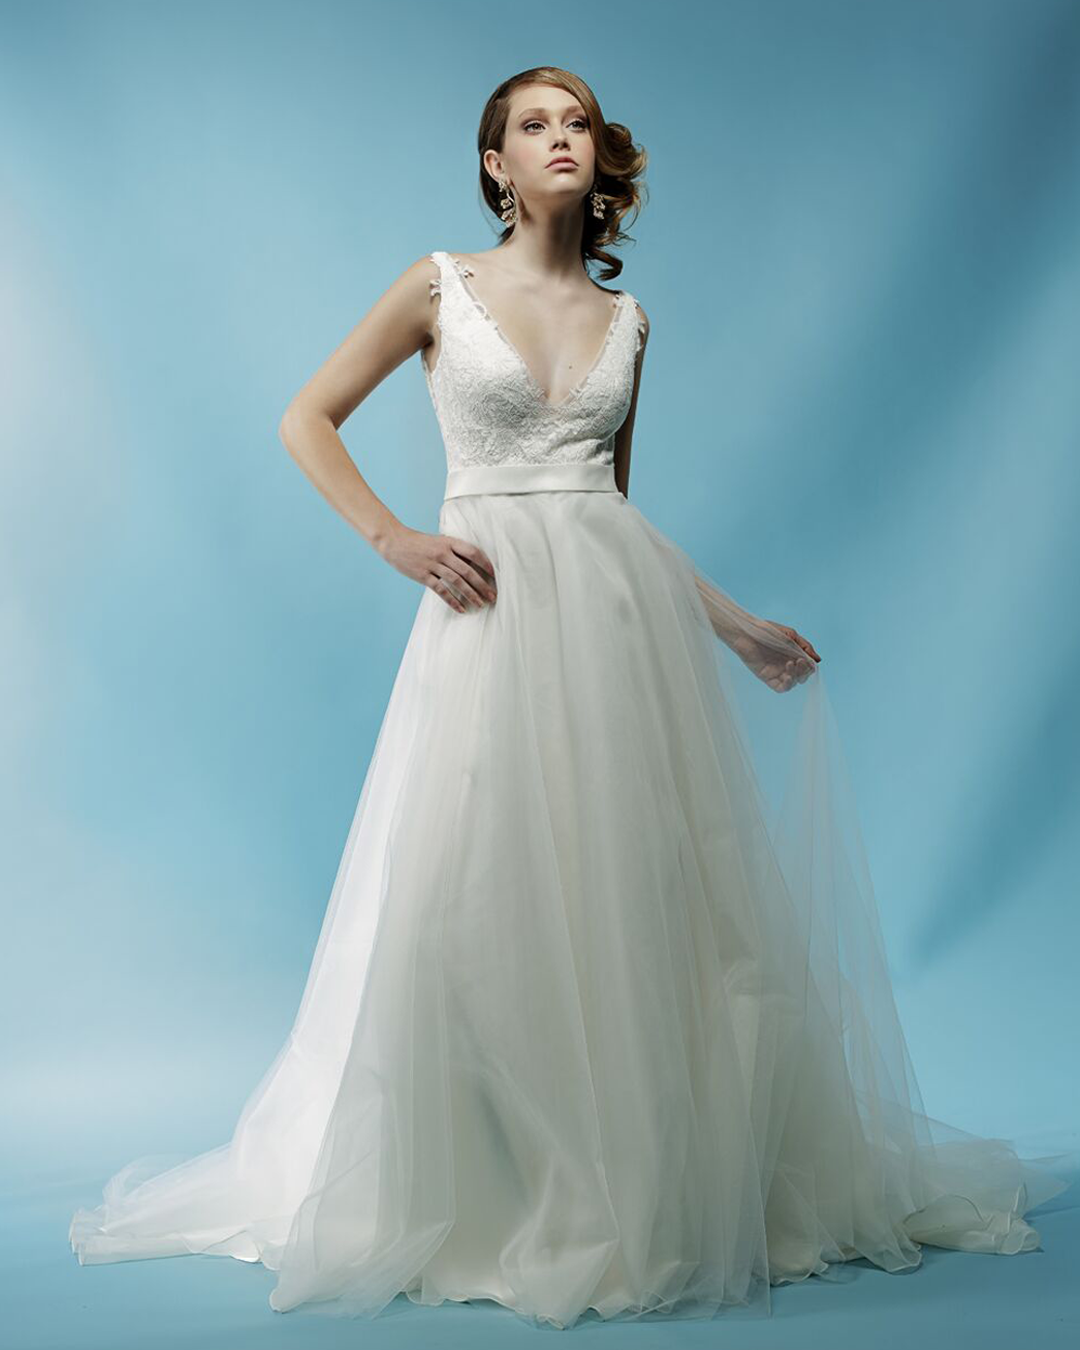 Noelle, Spring 2018 Collection | tulle ballgown | Ivy & Aster ...